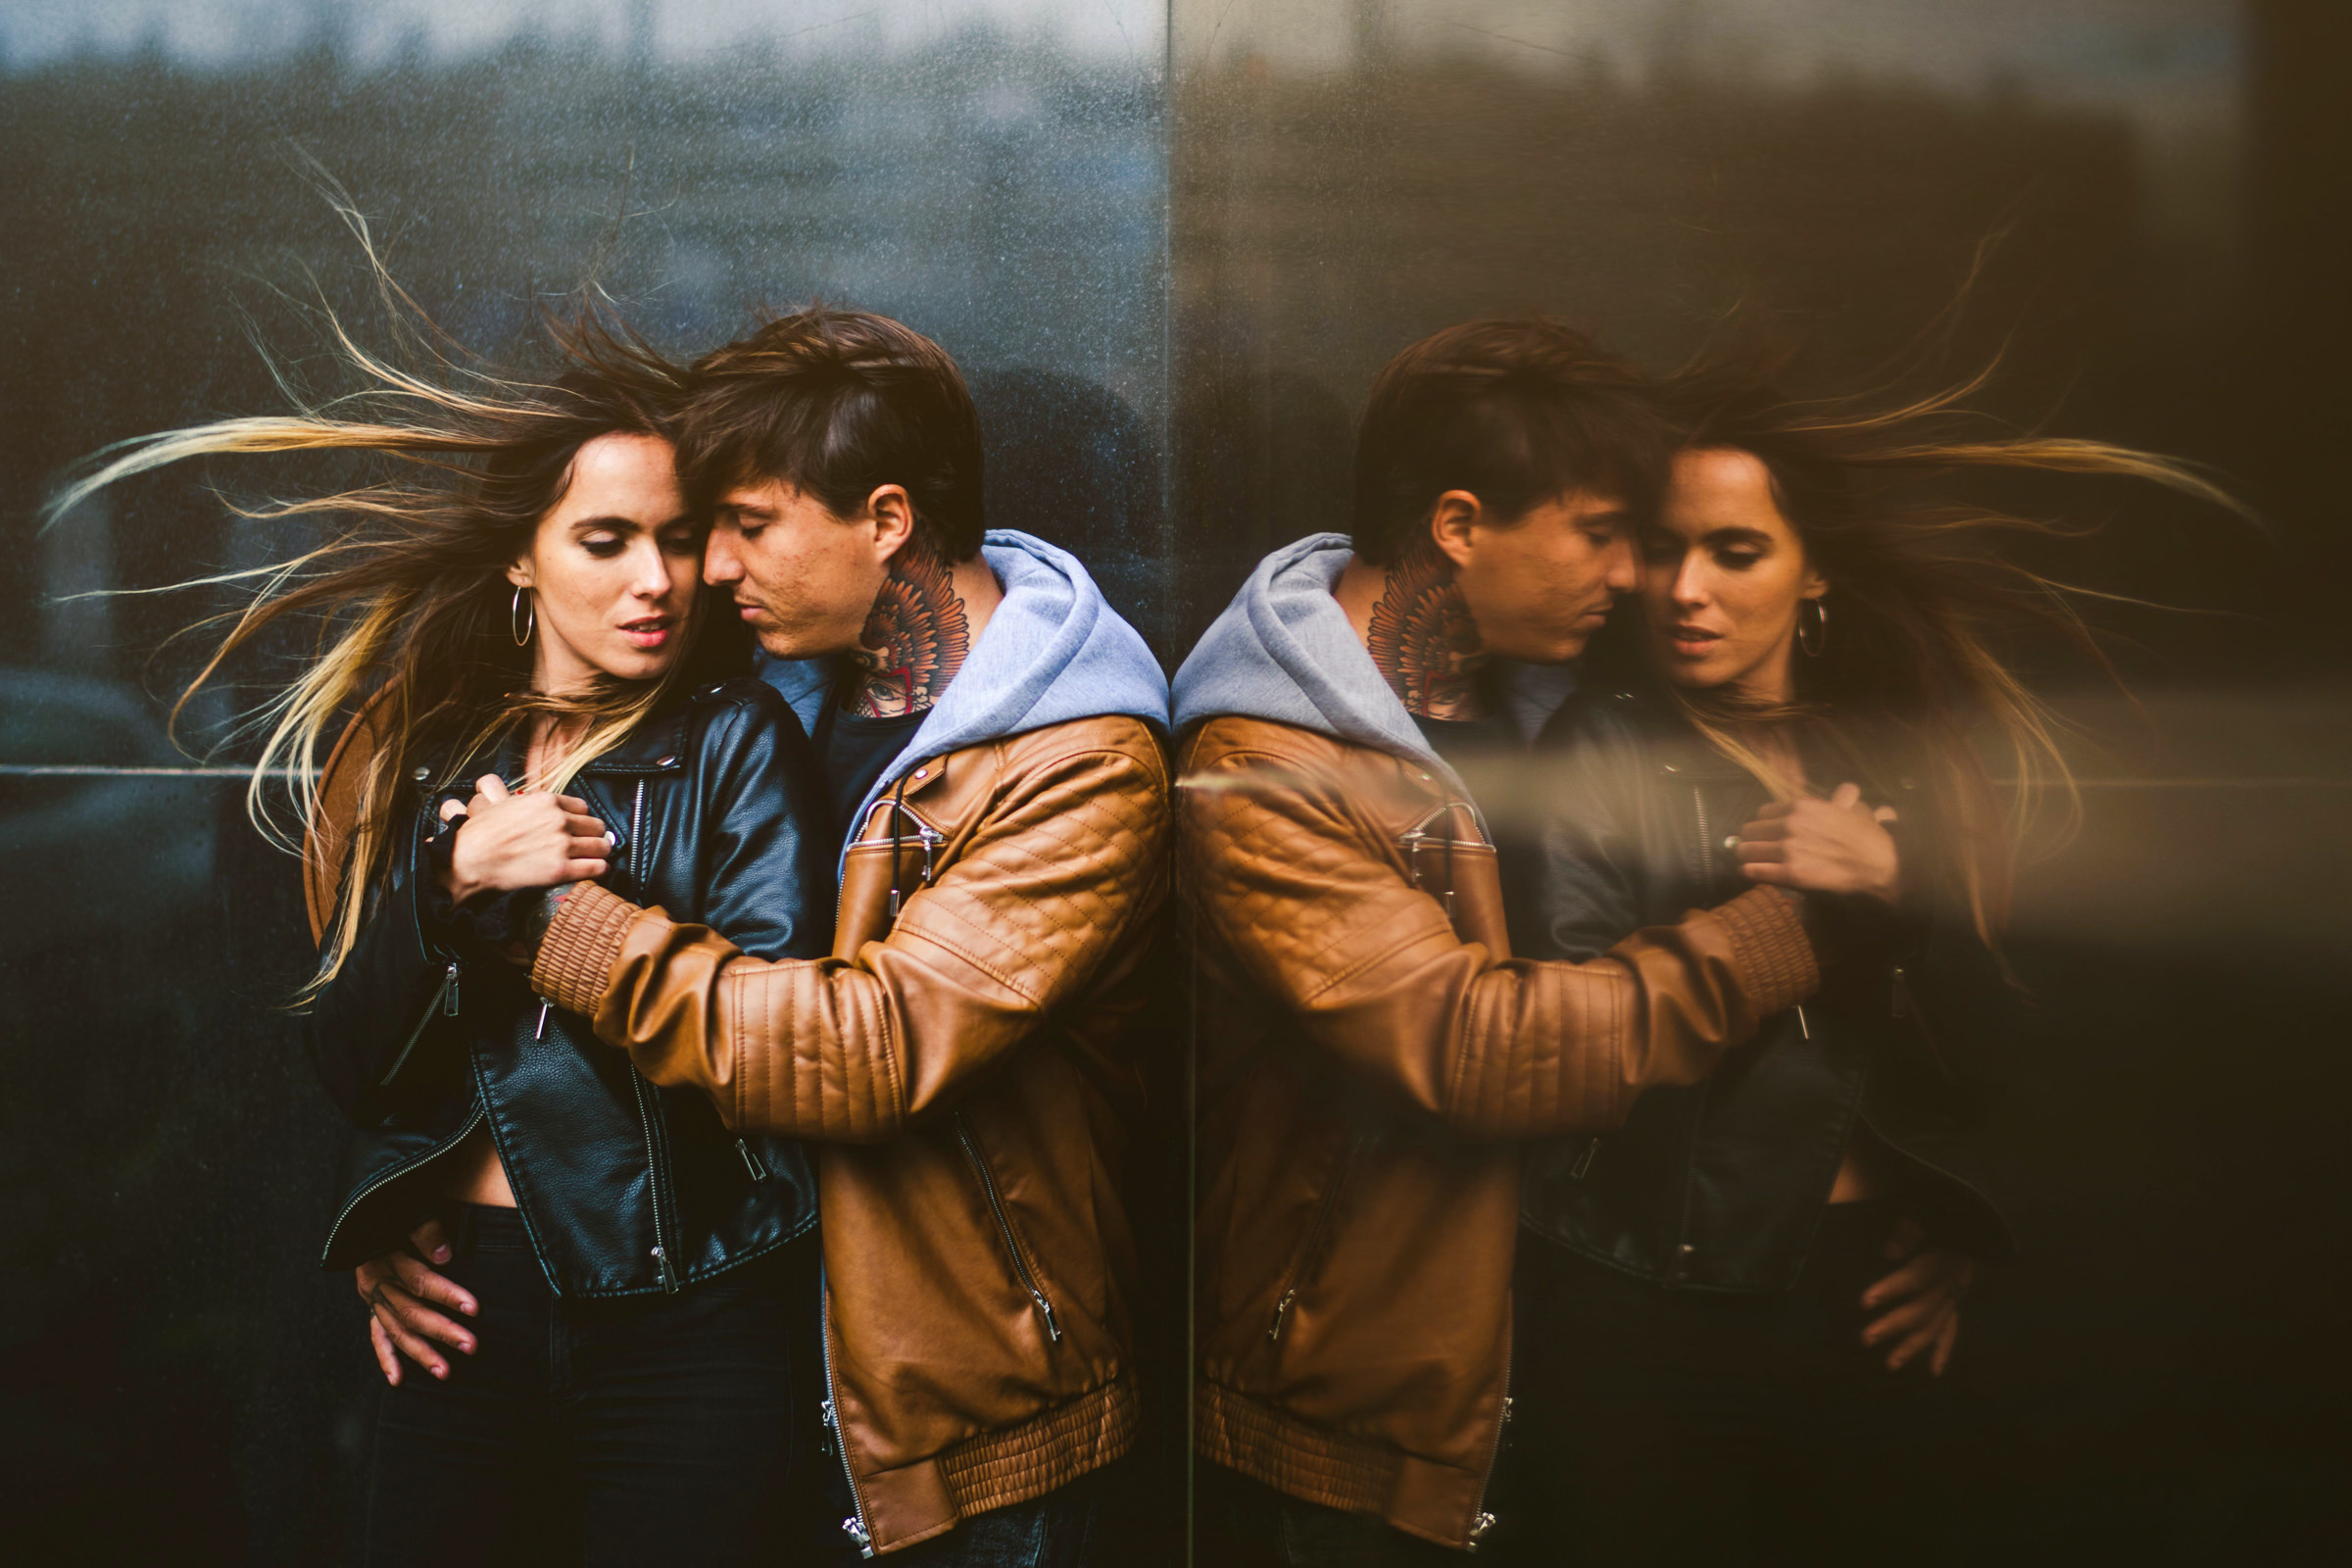 Couple reflected in marble wall - photo by Sam Hurd